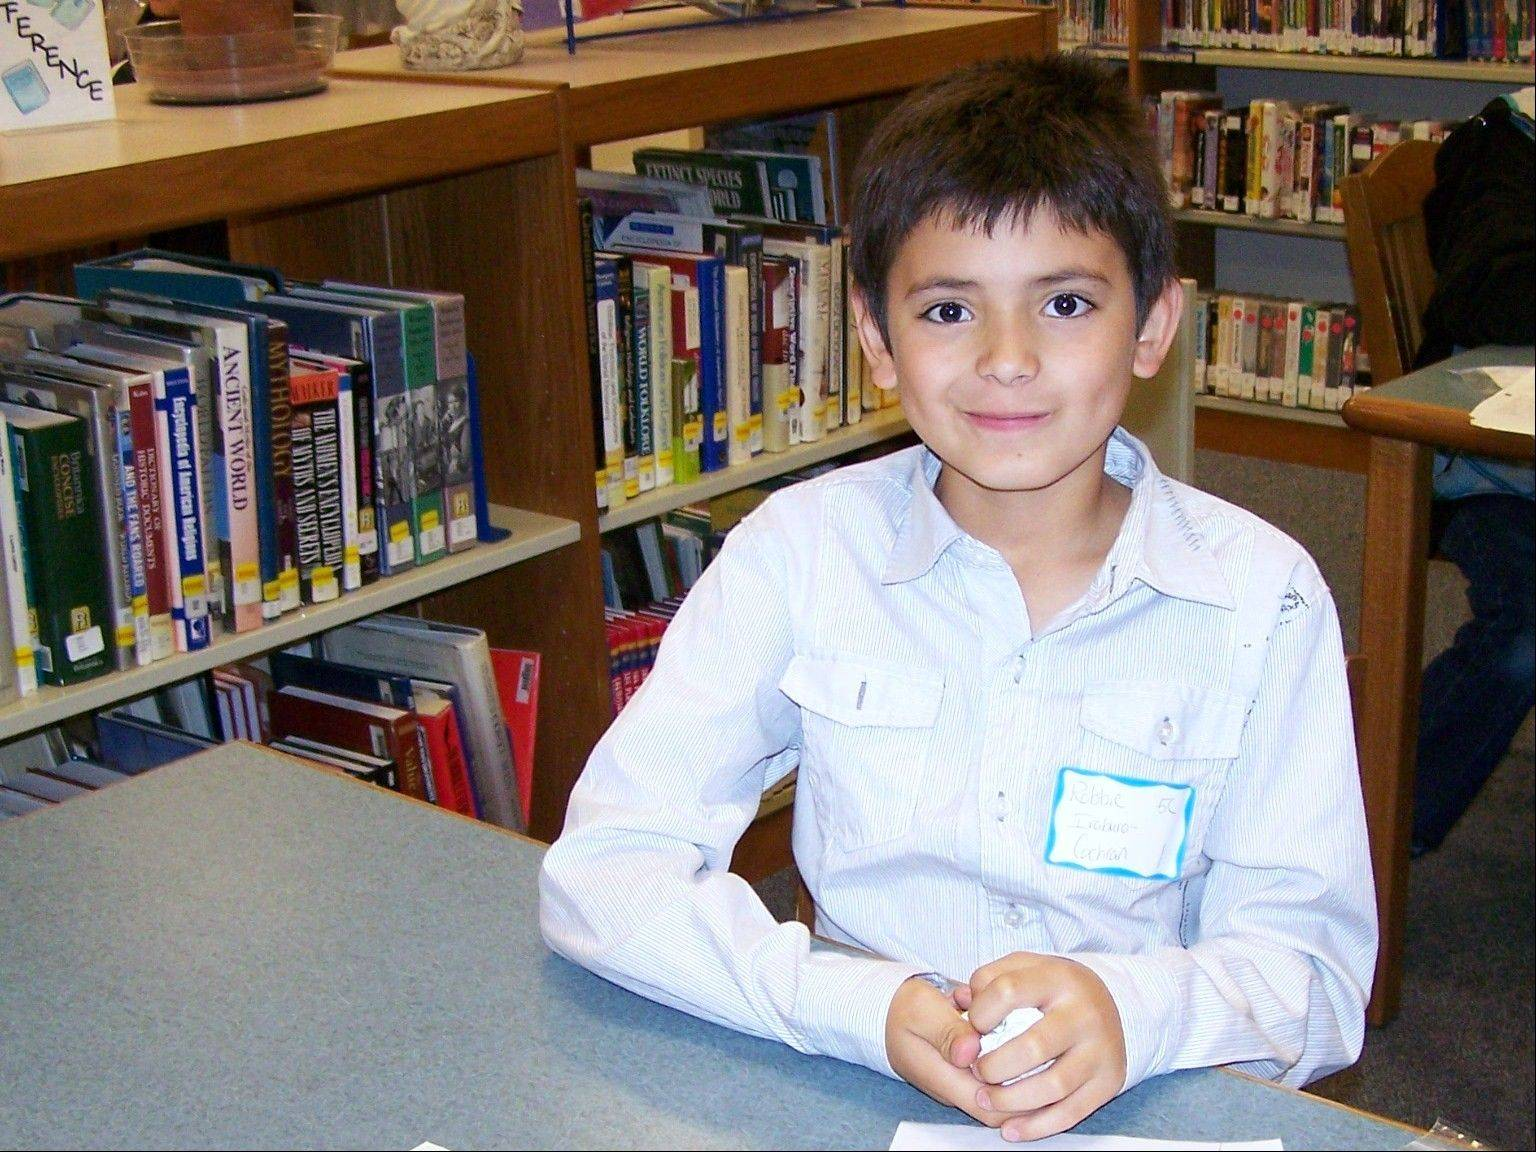 Robbie Iraburo Cochran, 10, learned about electronics and gadgets during the interview he conducted.